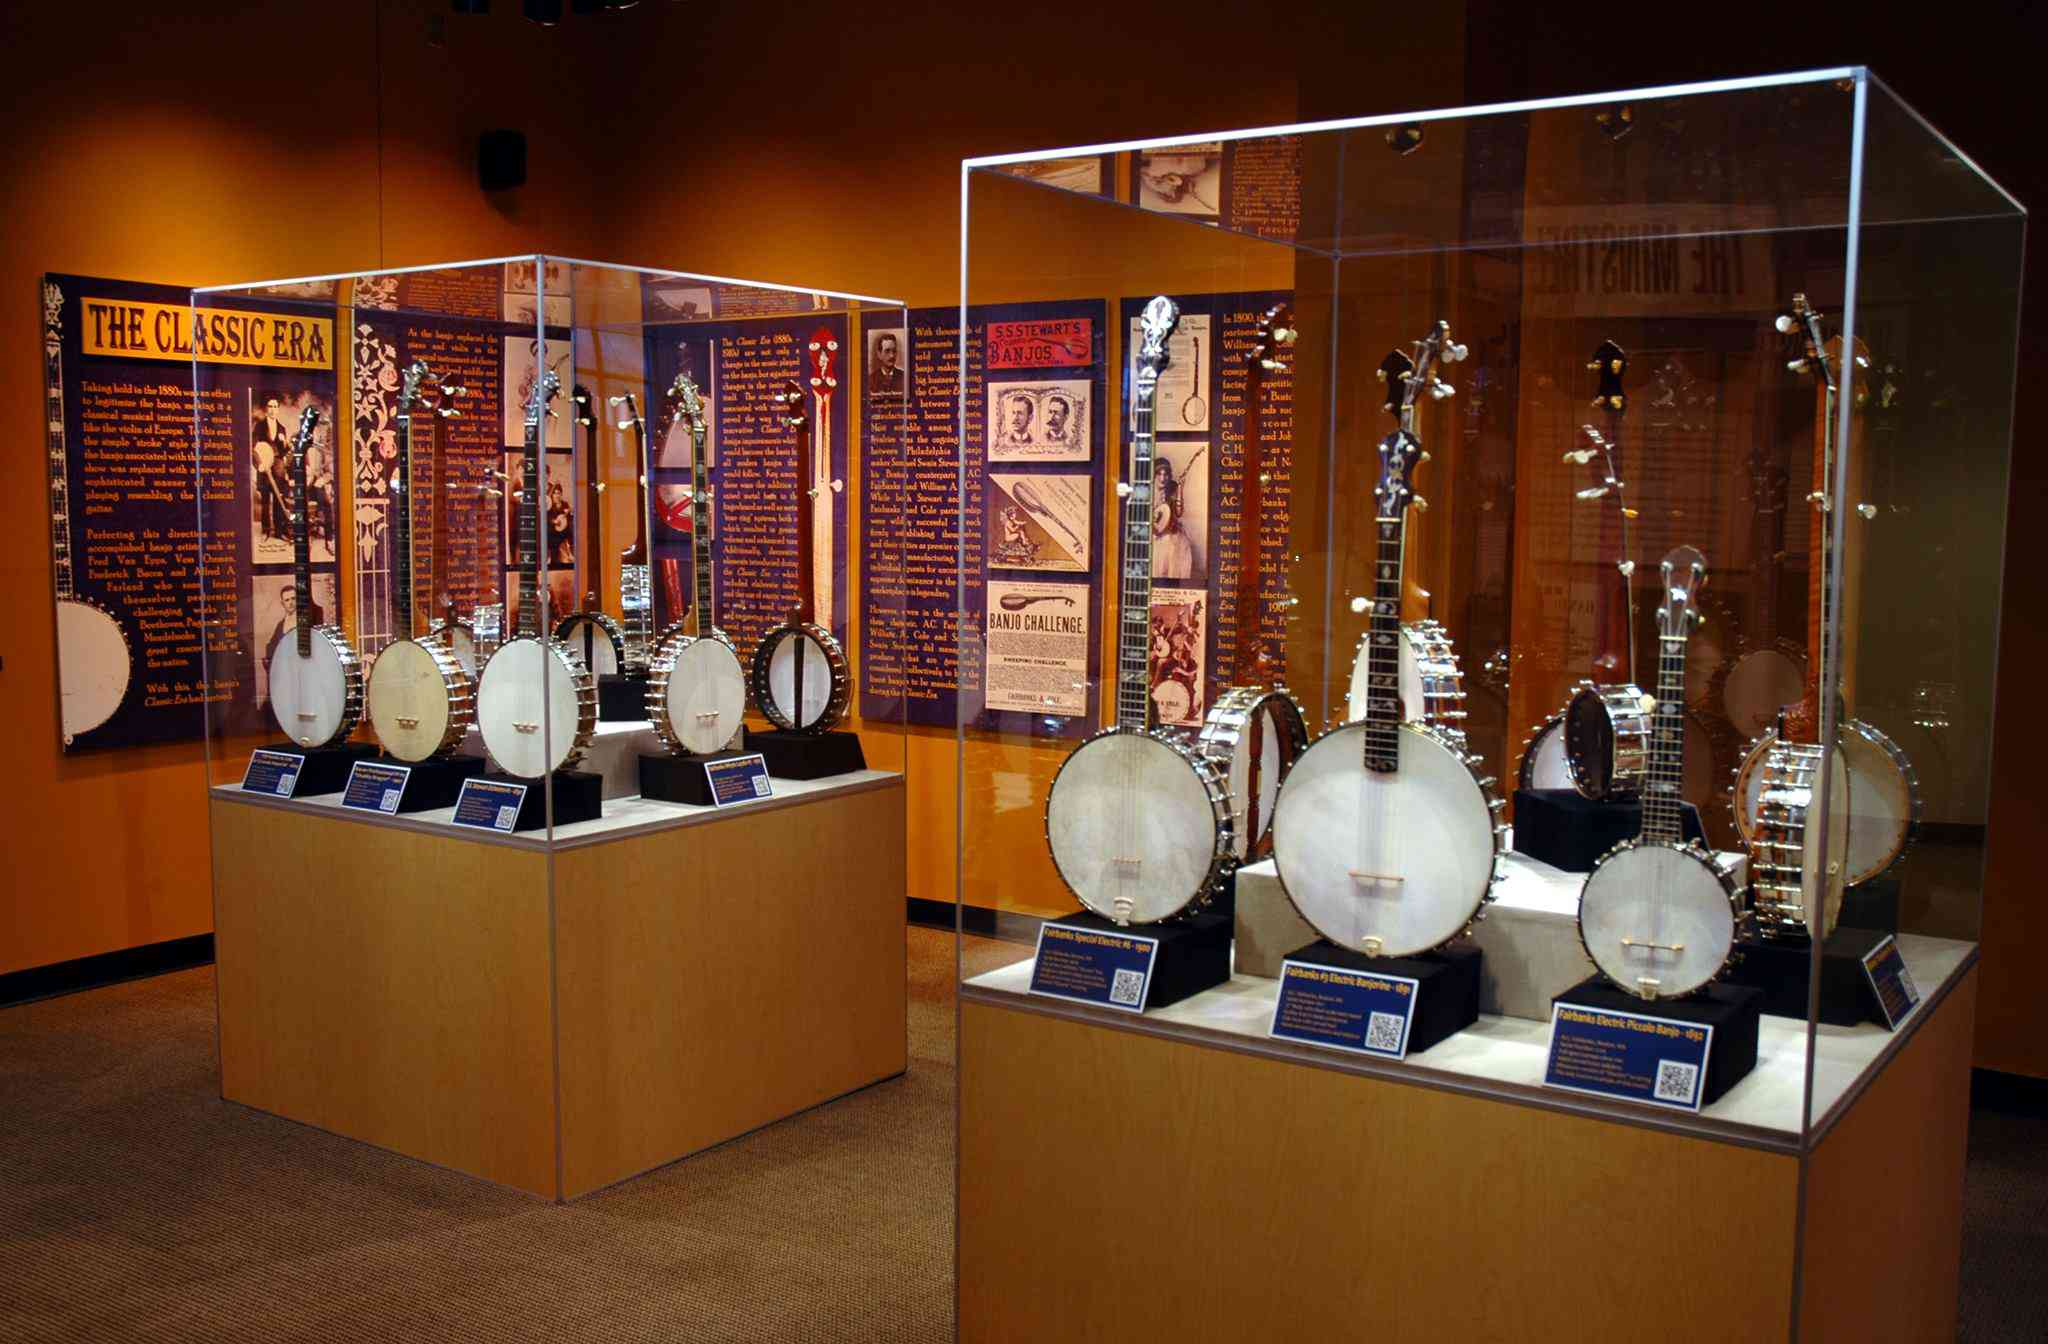 Two display cases of filled with various banjos